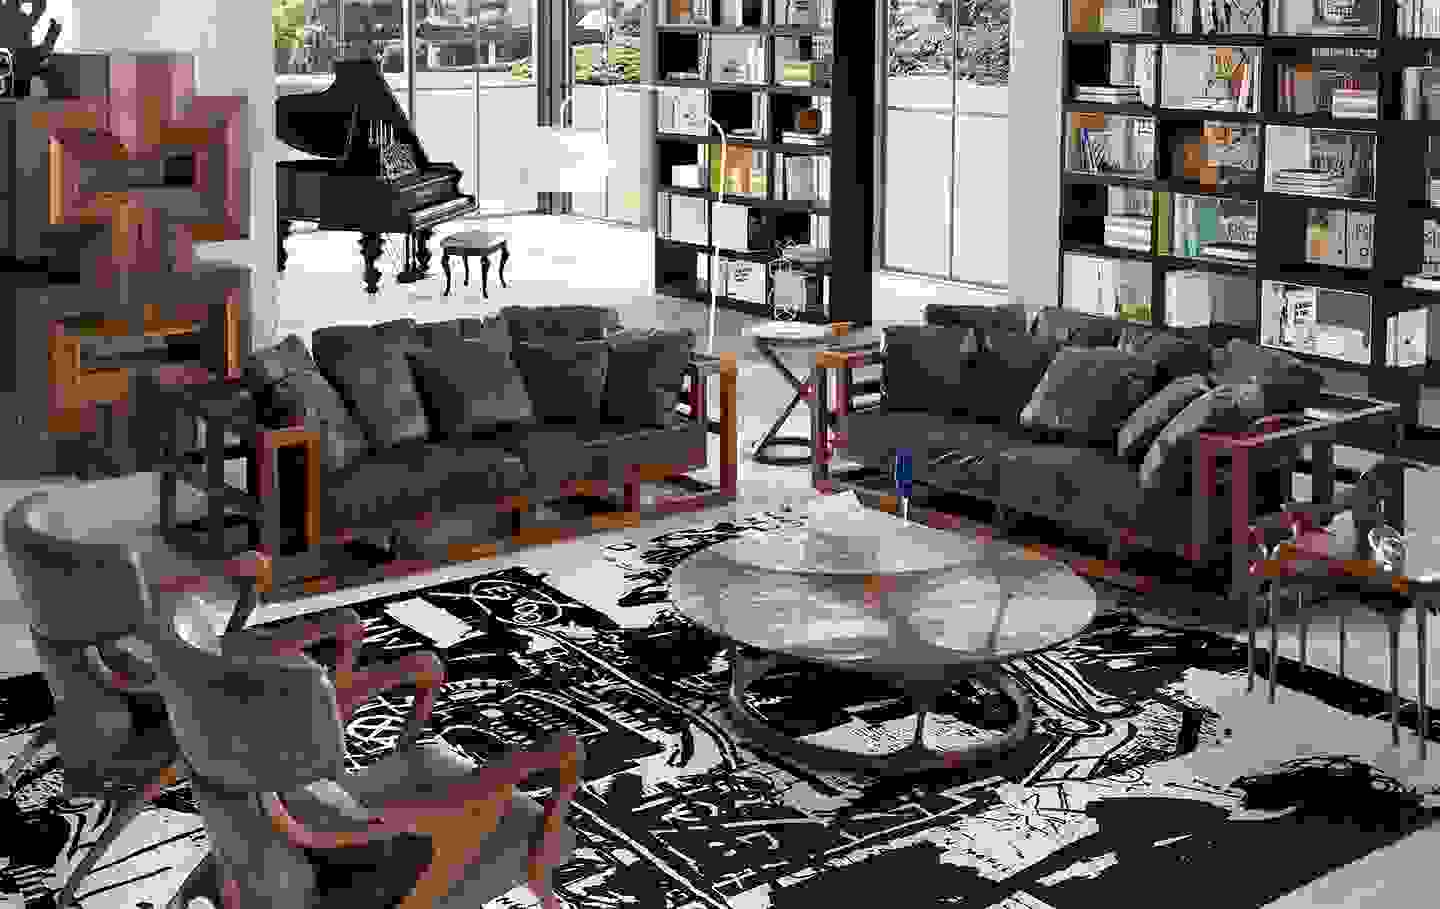 camus-collection-living-room.jpg